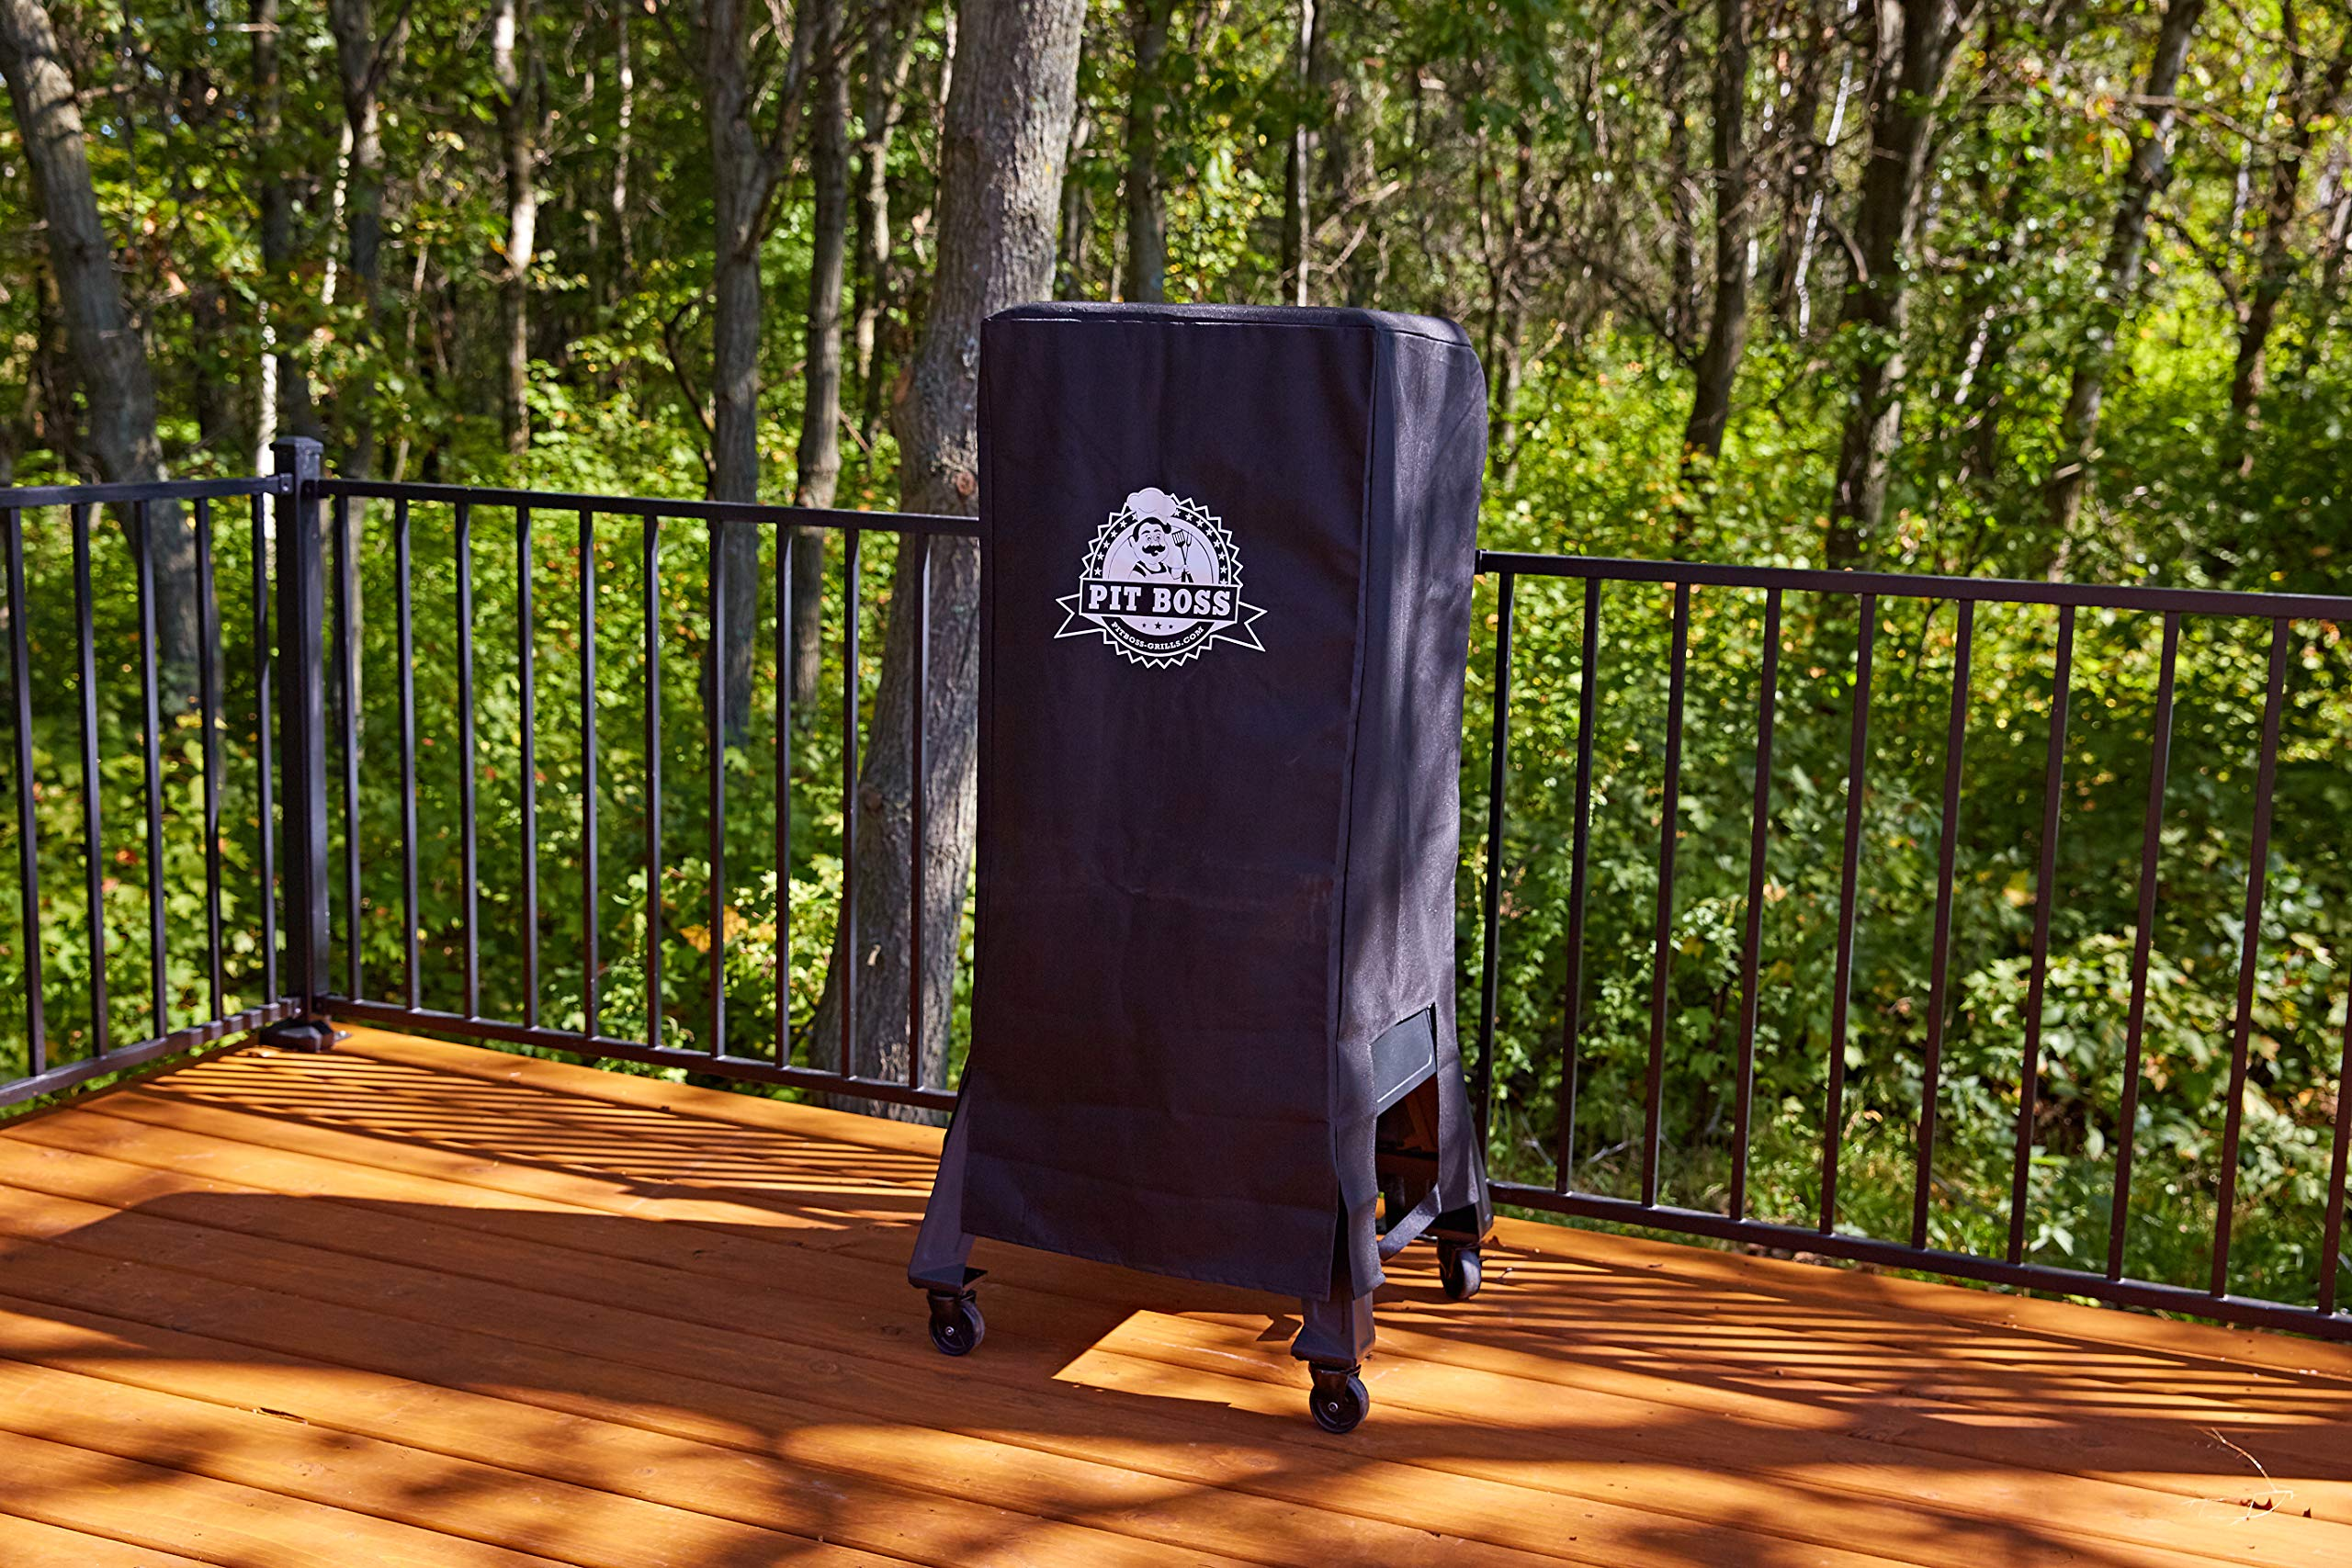 Pit Boss Grills 73350 Electric Smoker Cover, Black by Pit Boss Grills (Image #2)